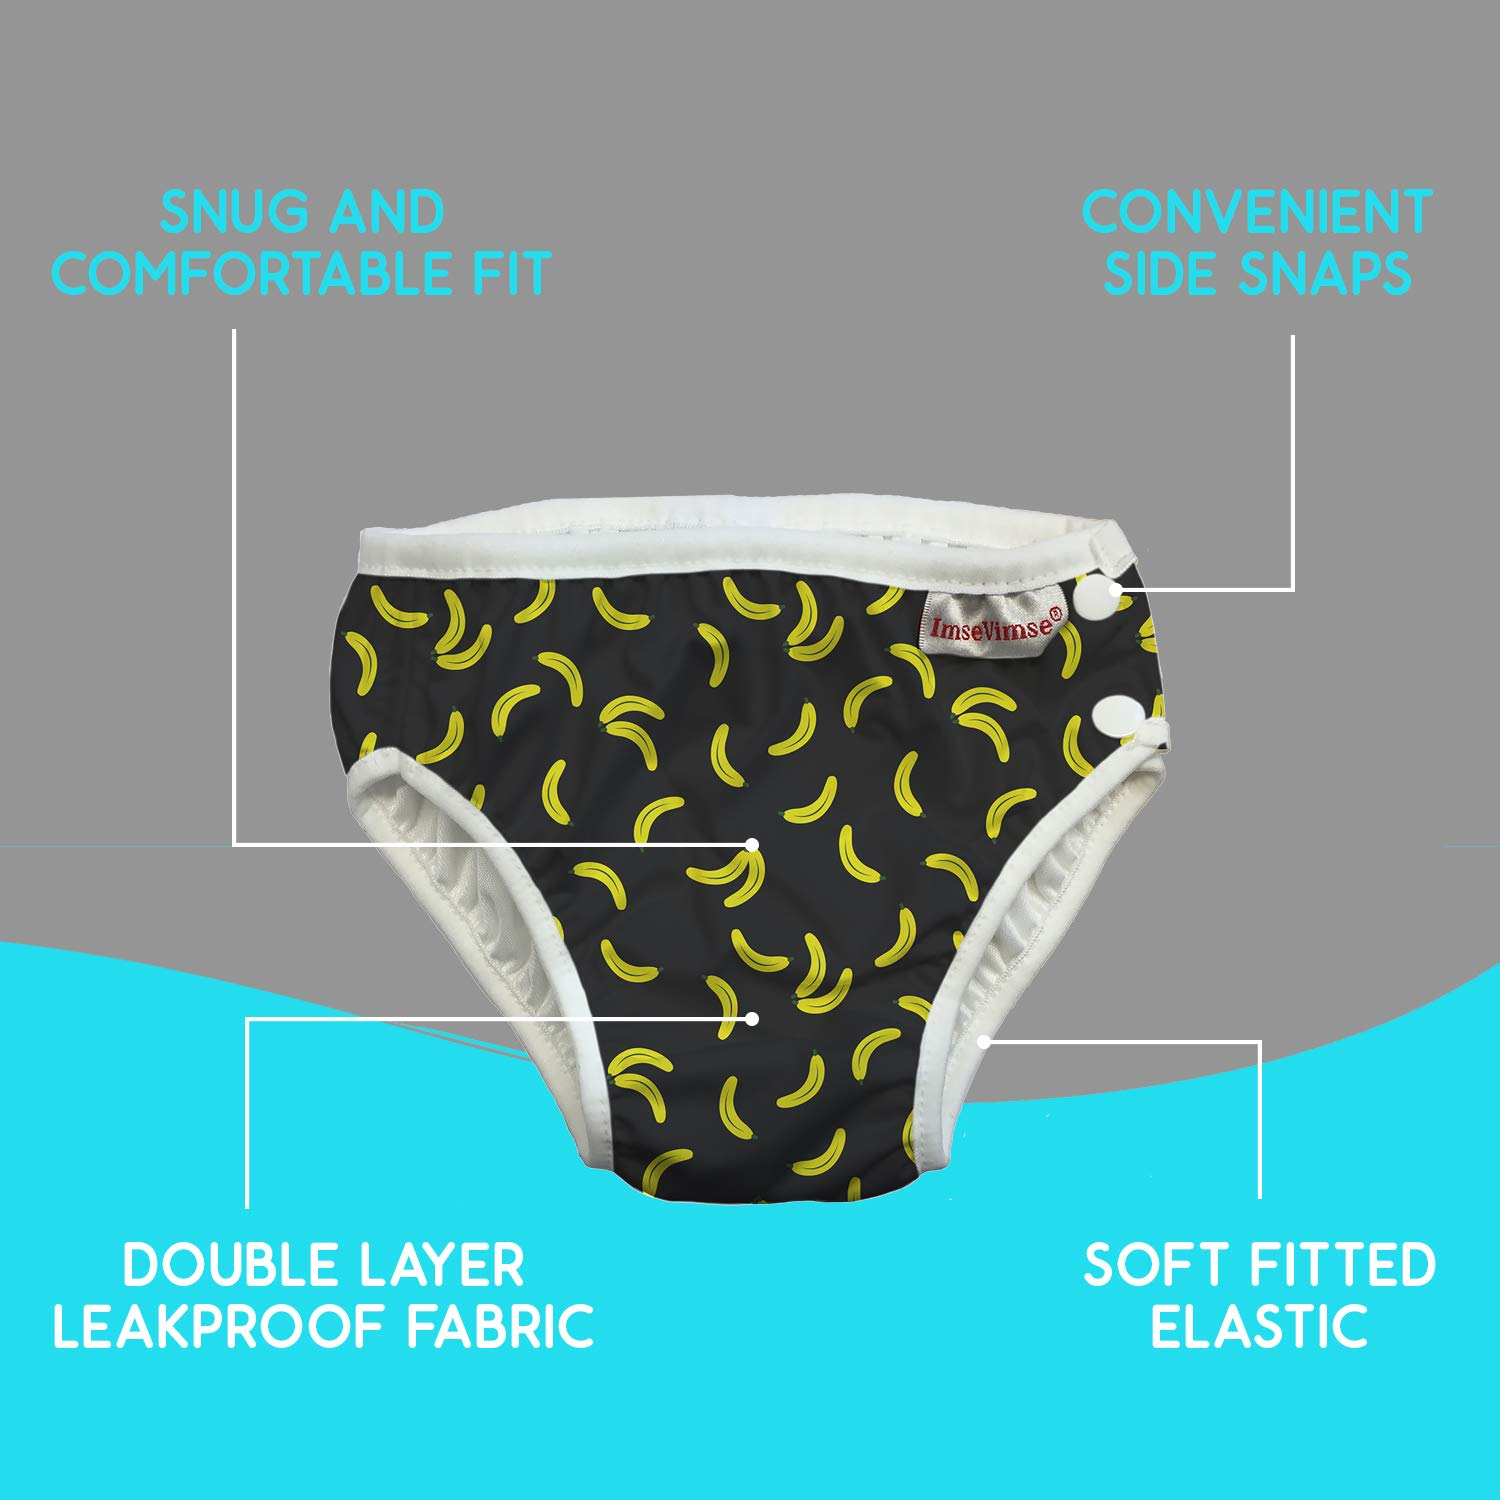 ImseVimse Eco Friendly Reusable Swim Diaper Made of Organic Cloth Sized for Infant to Toddler Boys Green Dino, NB 0-3M 9-13 lbs